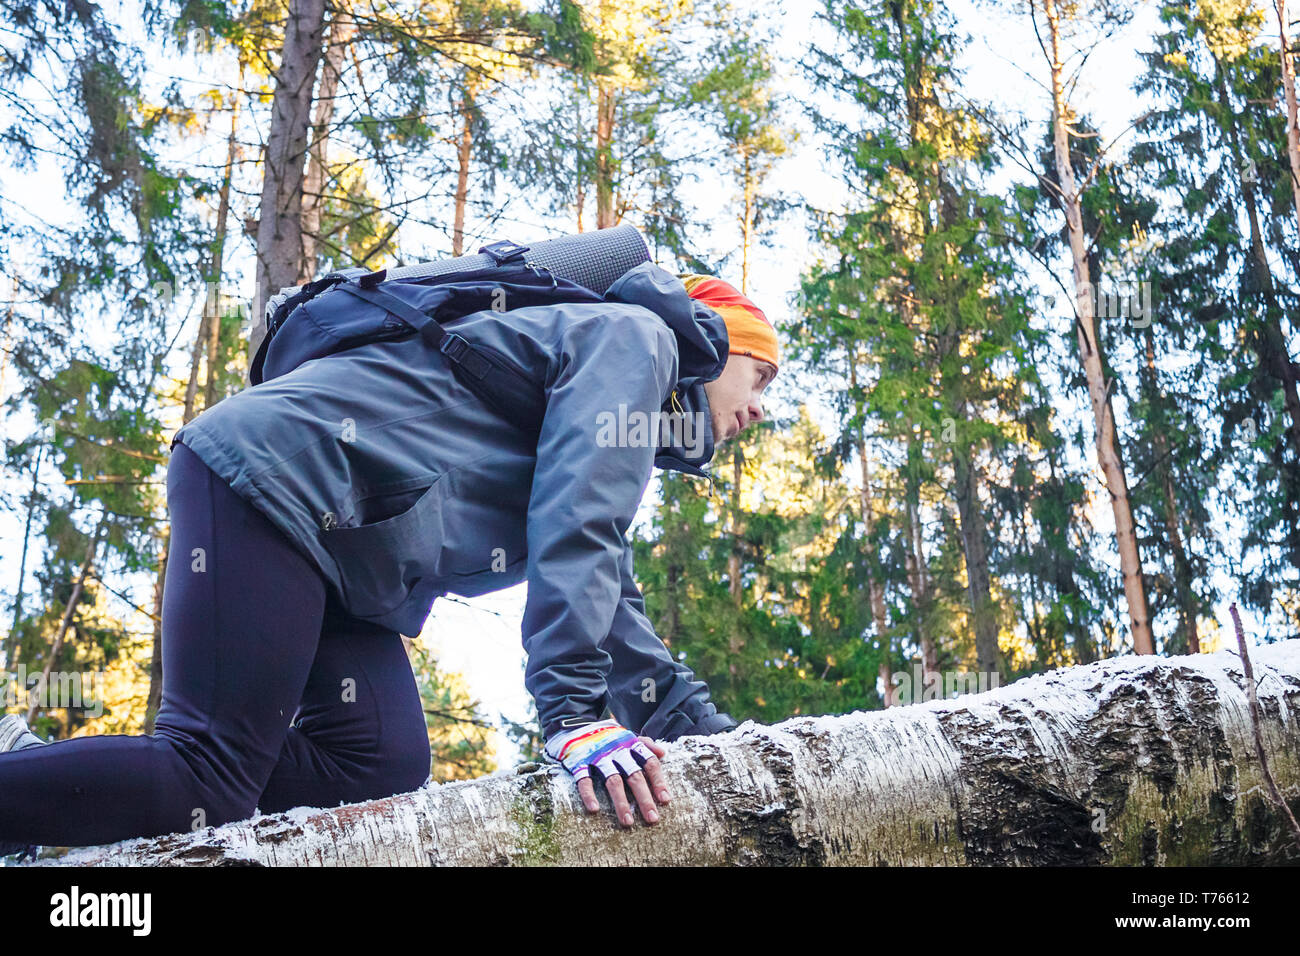 Young man with a backpack climbs onto a fallen birch in the forest - Stock Image